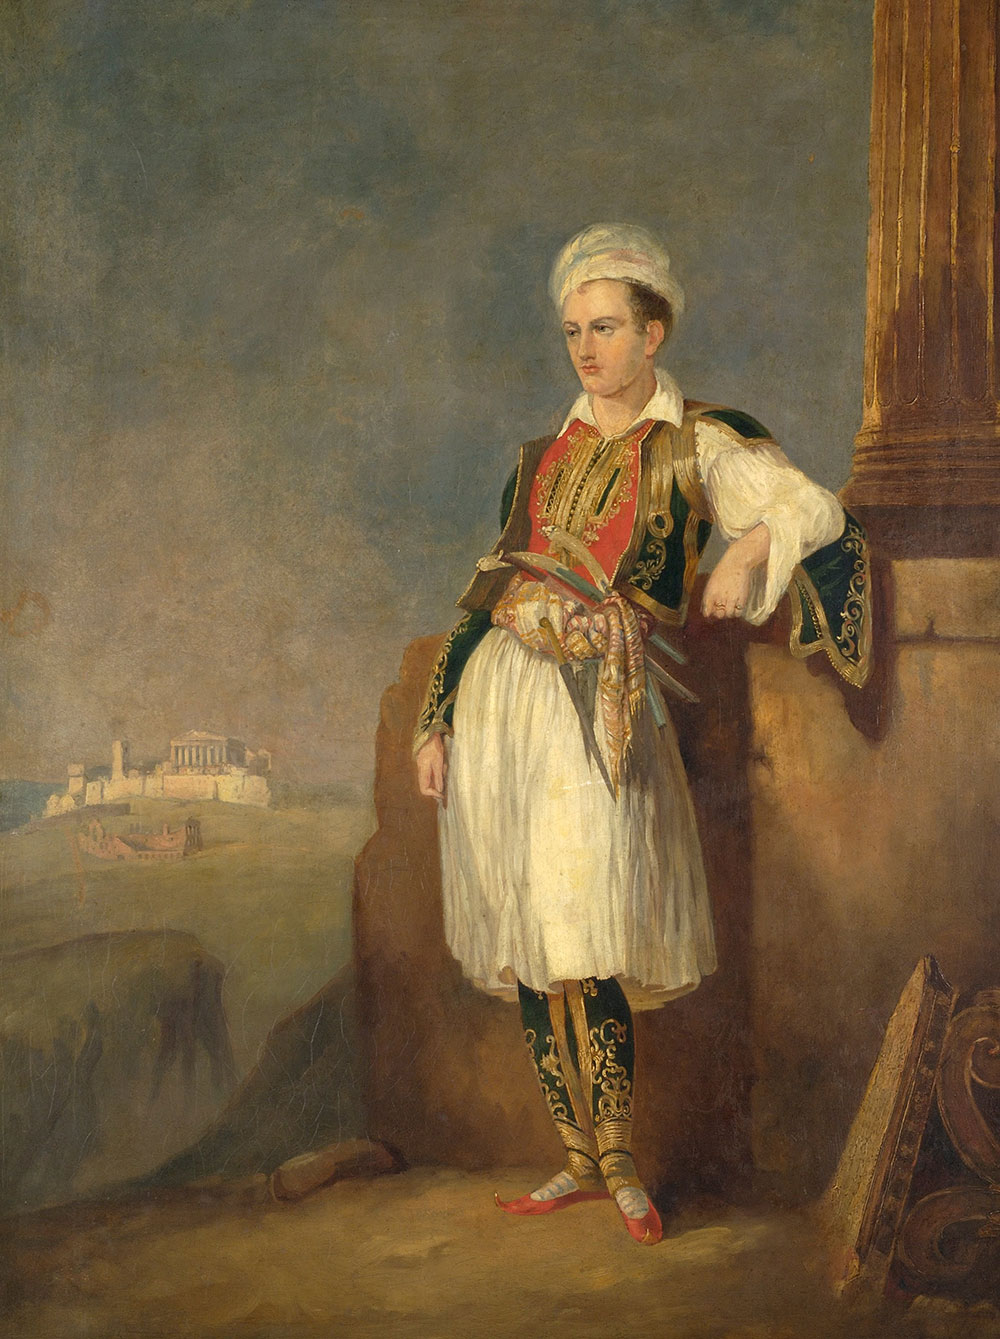 Portrait of Lord Byron in Greek costume, 1830, unknown artist.